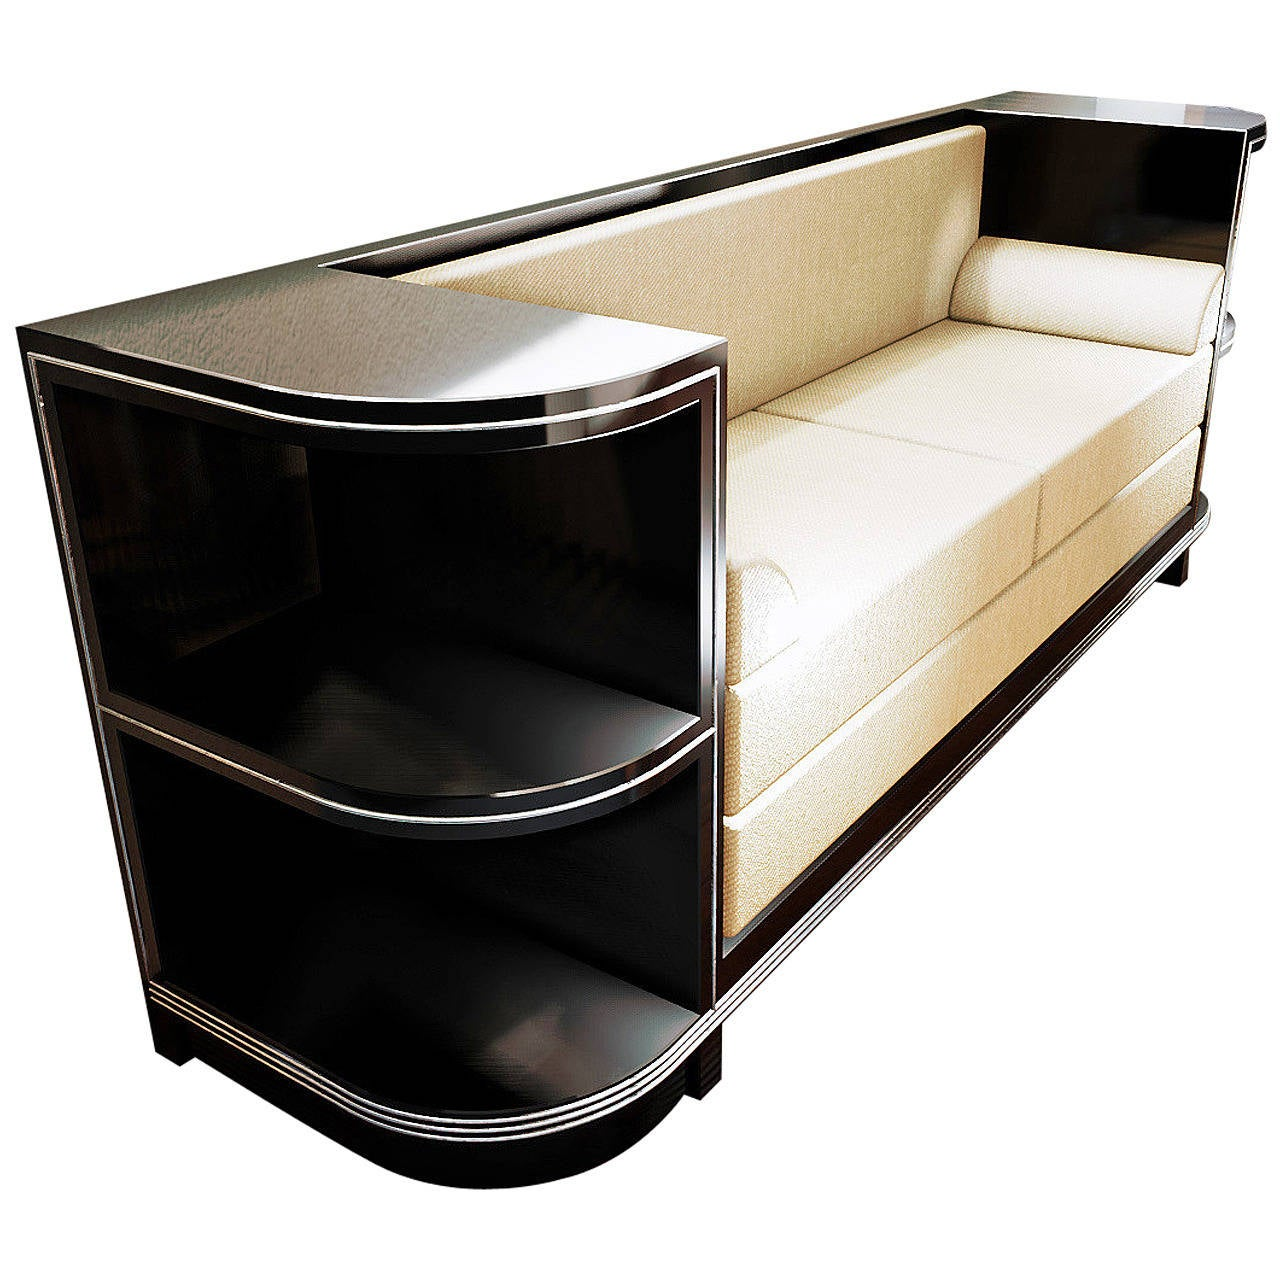 chromeliner art deco sofa at 1stdibs. Black Bedroom Furniture Sets. Home Design Ideas